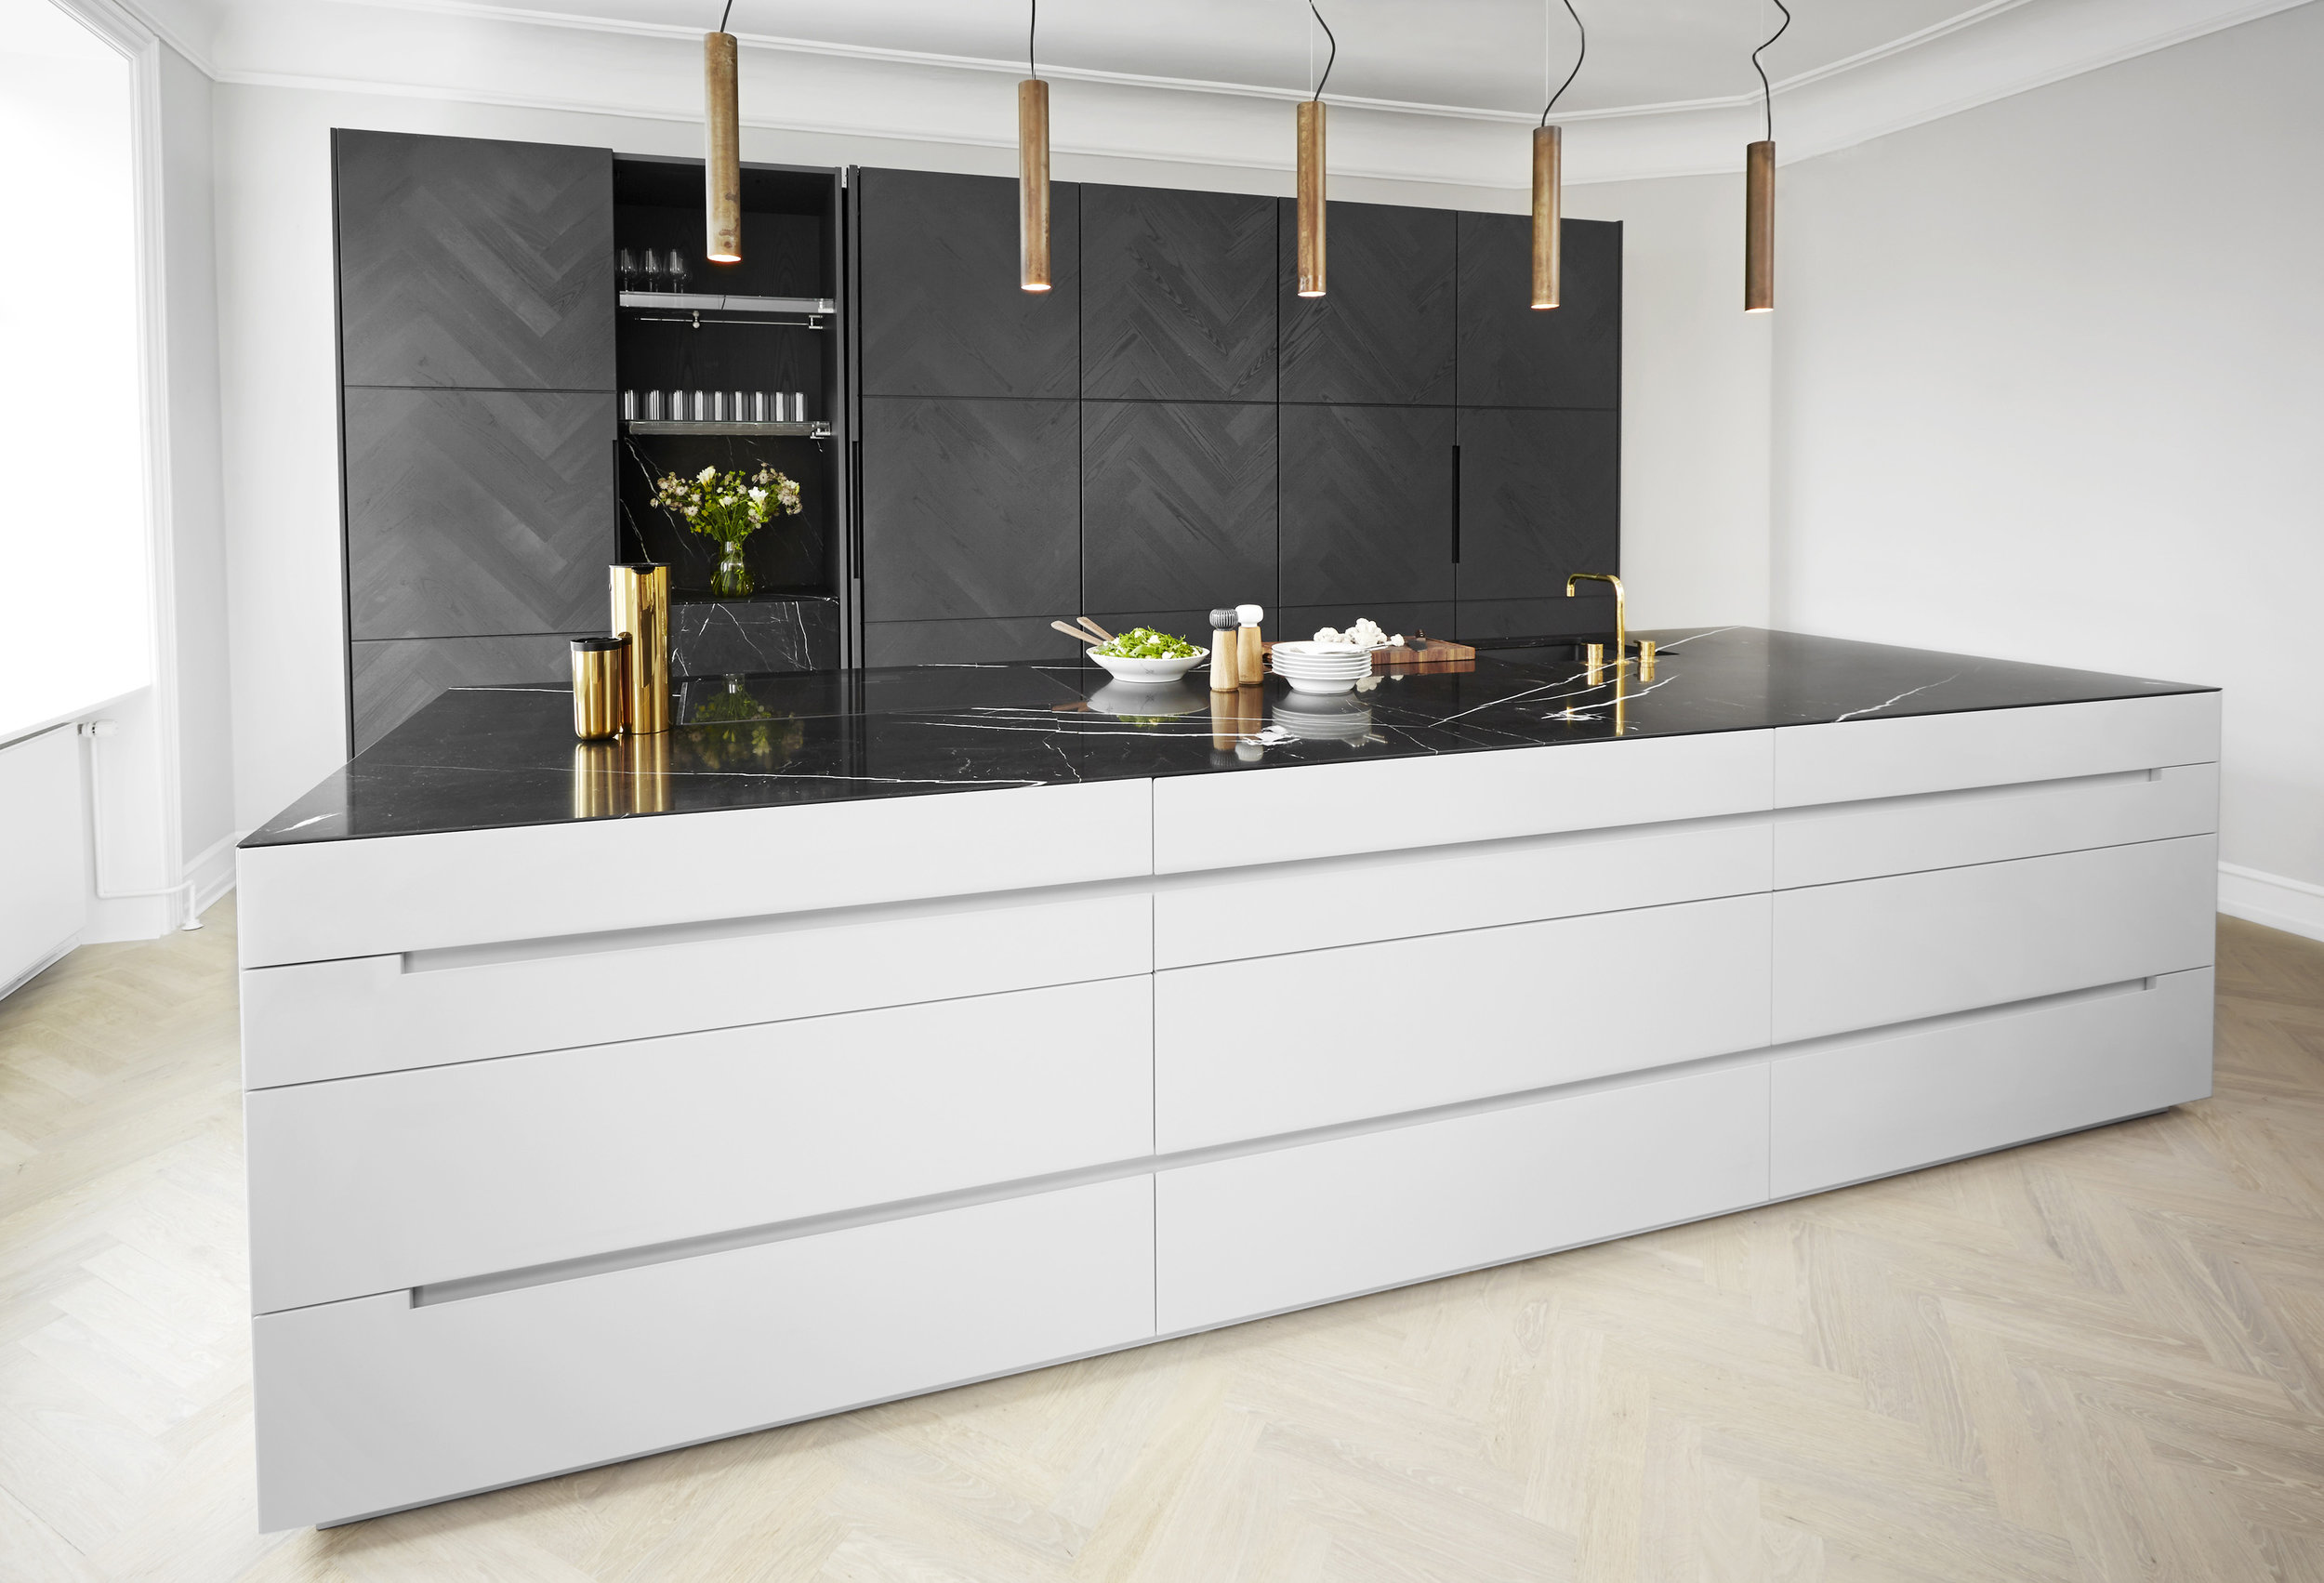 View Images from BOFORM kitchen and interior carpentry branding campaign